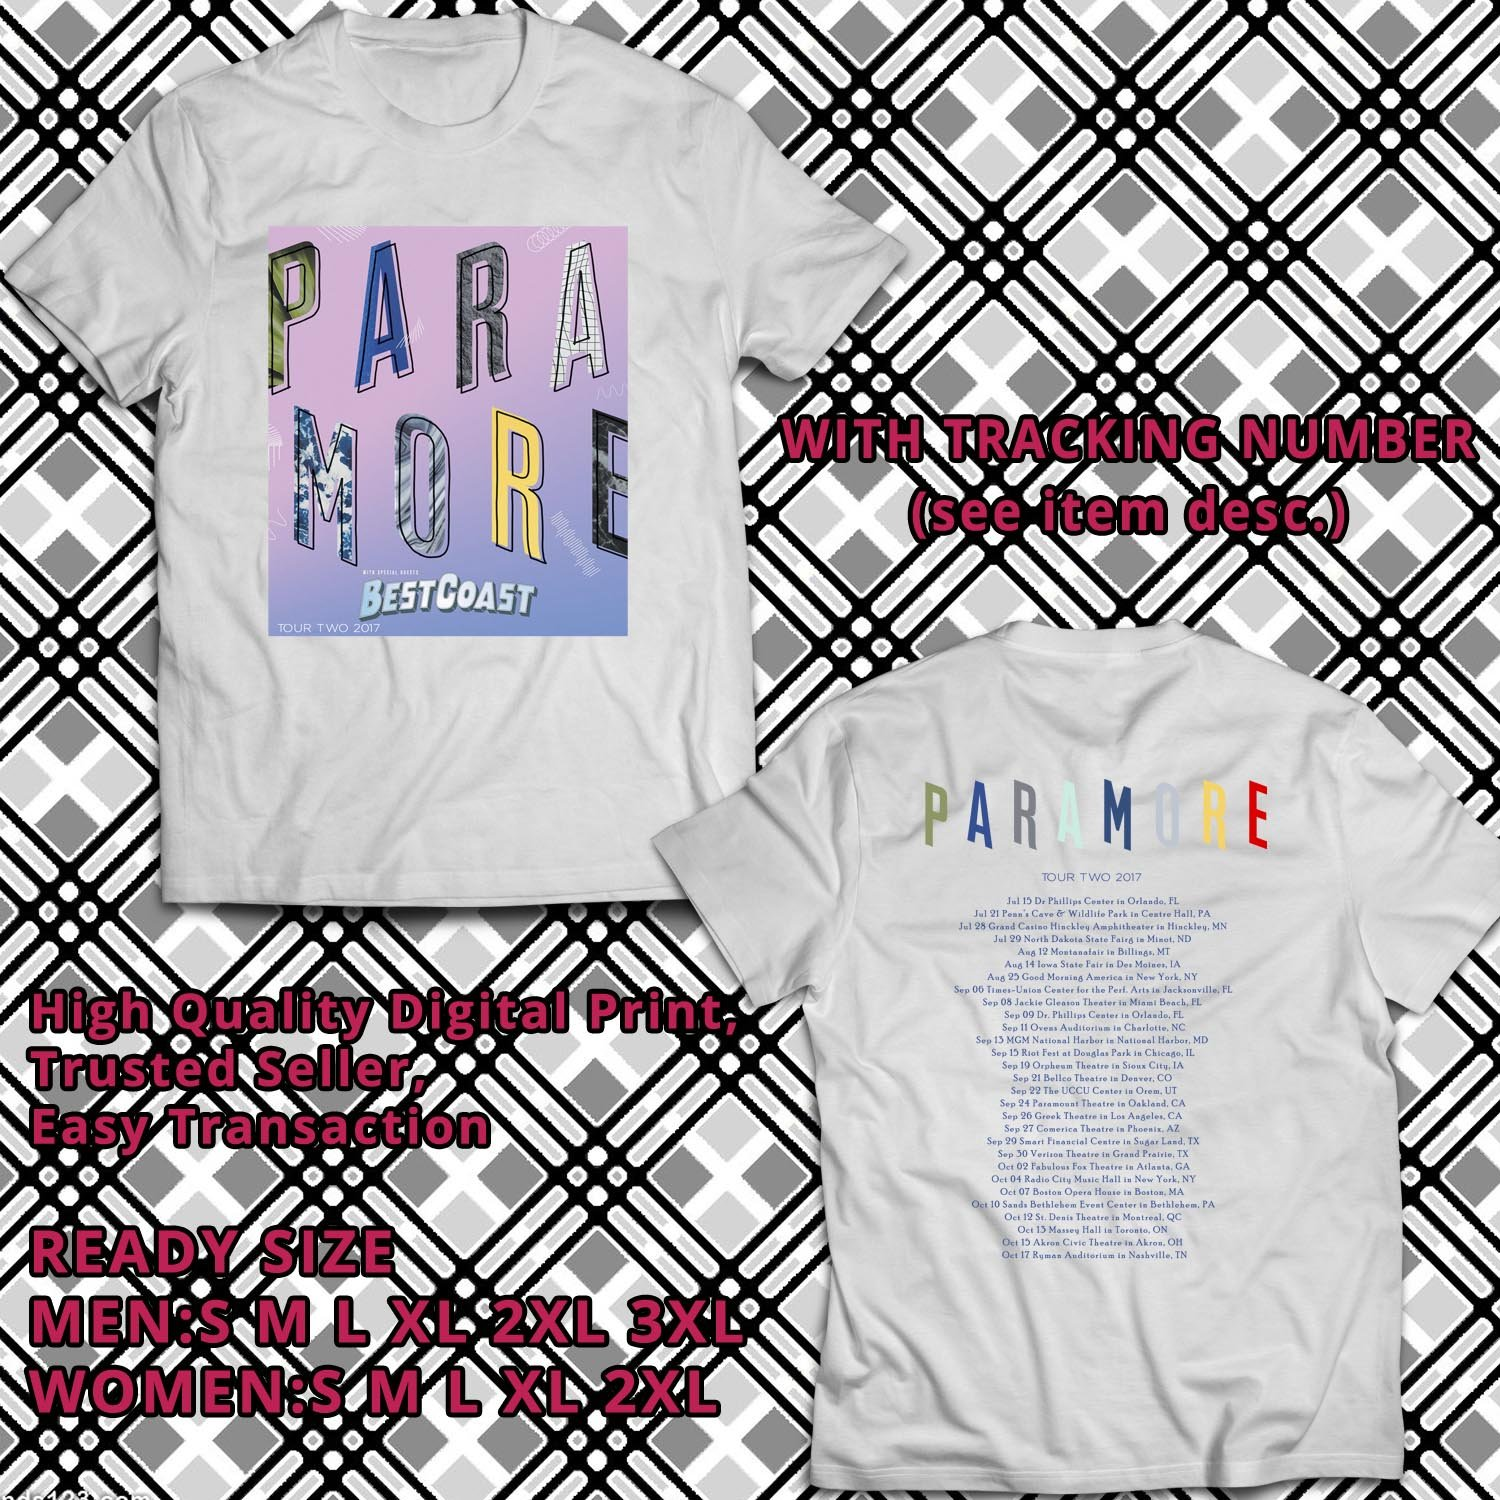 HITS PARAMORE AFTER LAUGHTER ALBUM TOUR TWO 2017 WHITE TEE'S 2SIDE MAN WOMEN ASTR 667